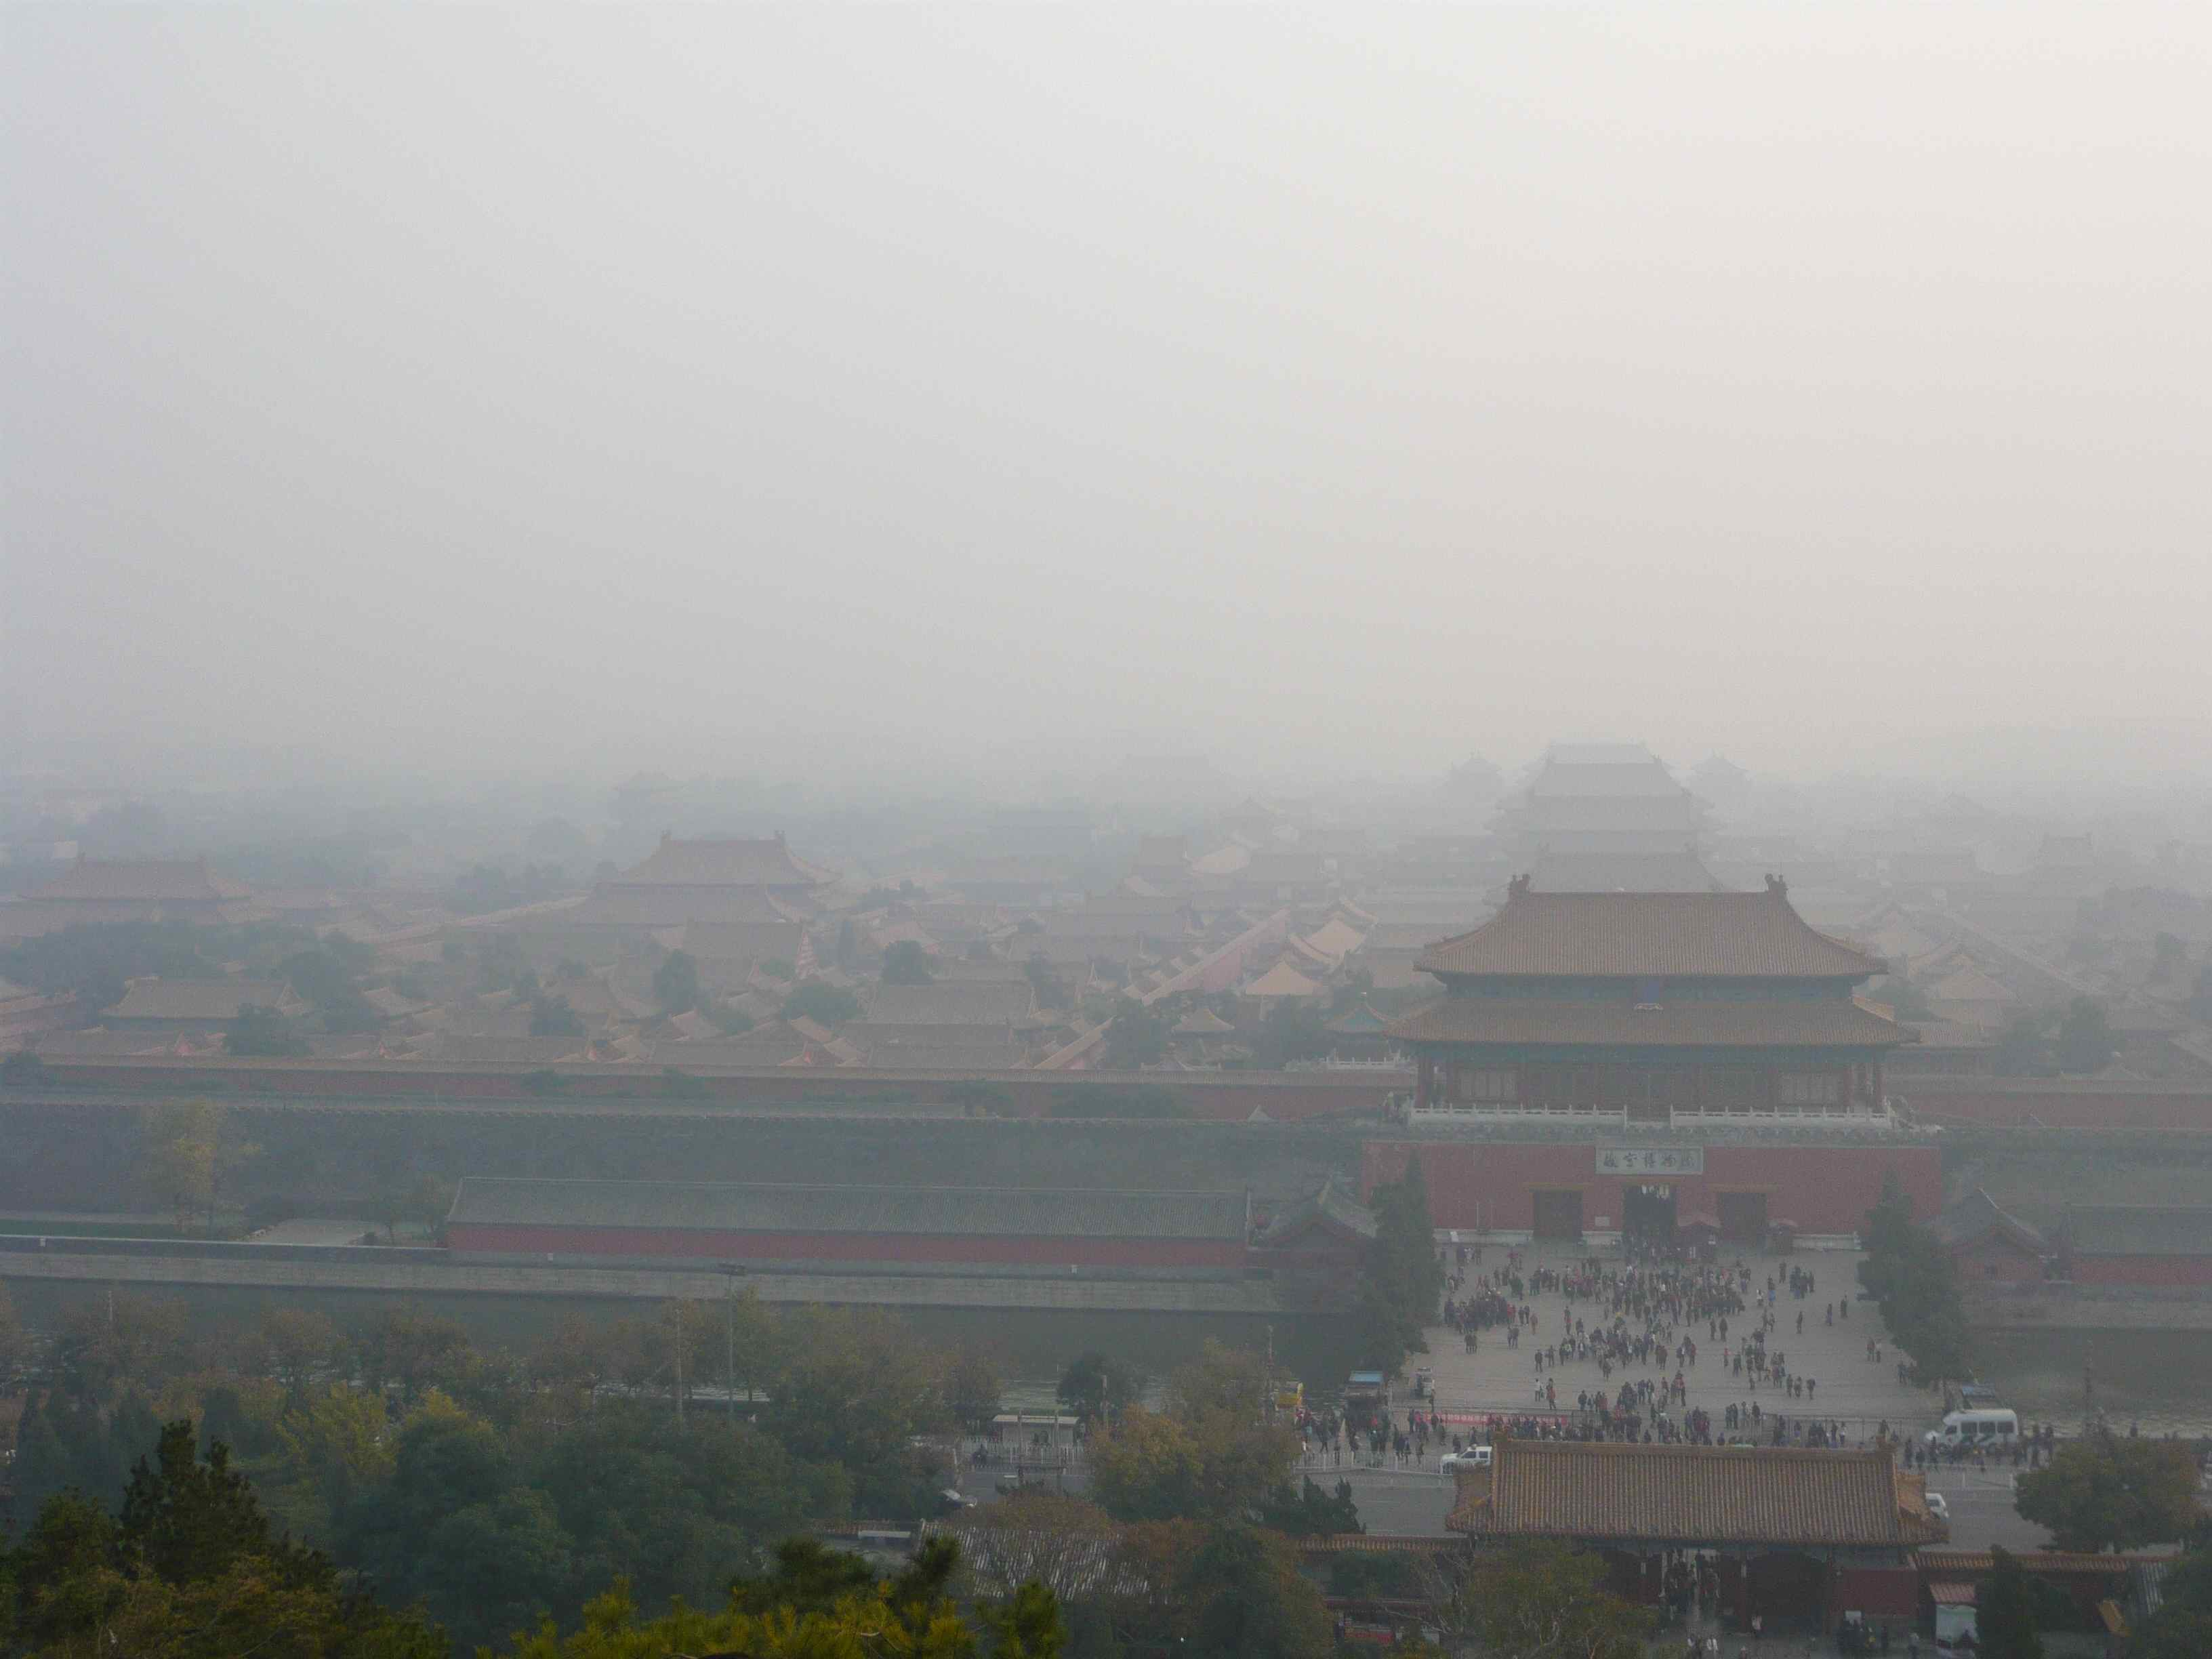 The thick smog of pollution blanketing the Forbidden City in Beijing